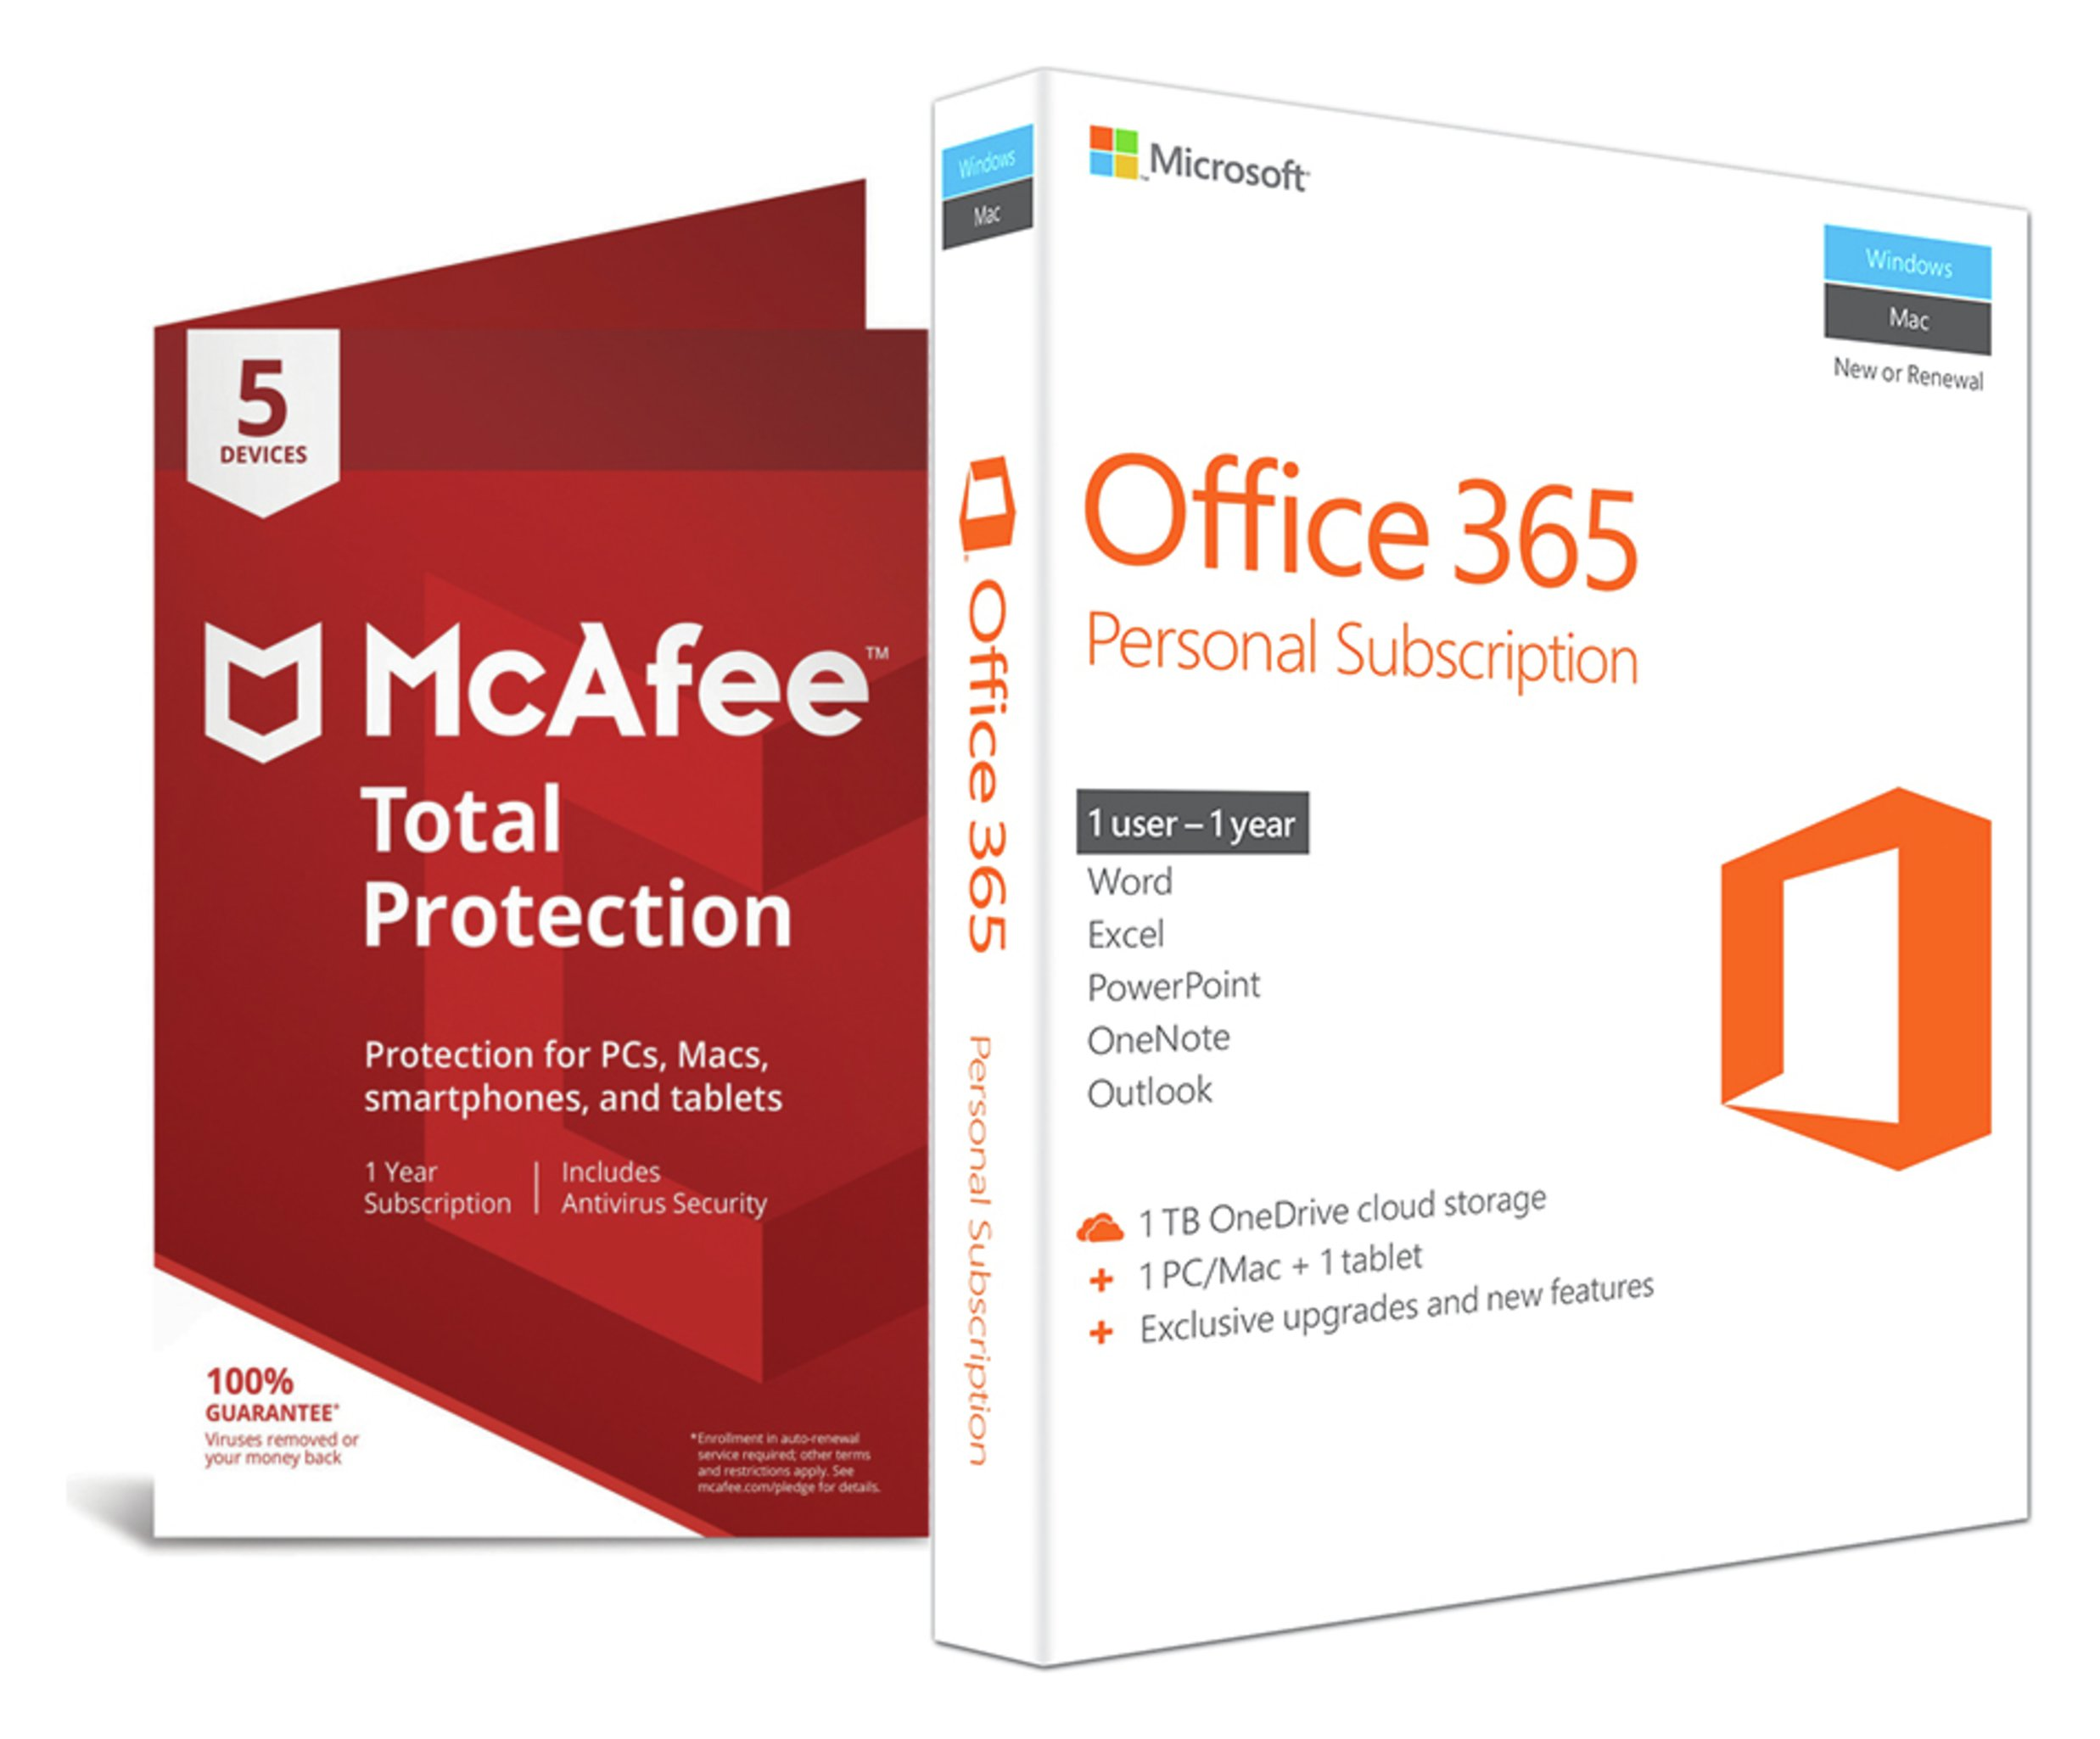 Microsoft - Office 365 Personal and McAfee - TP - 5 Devices